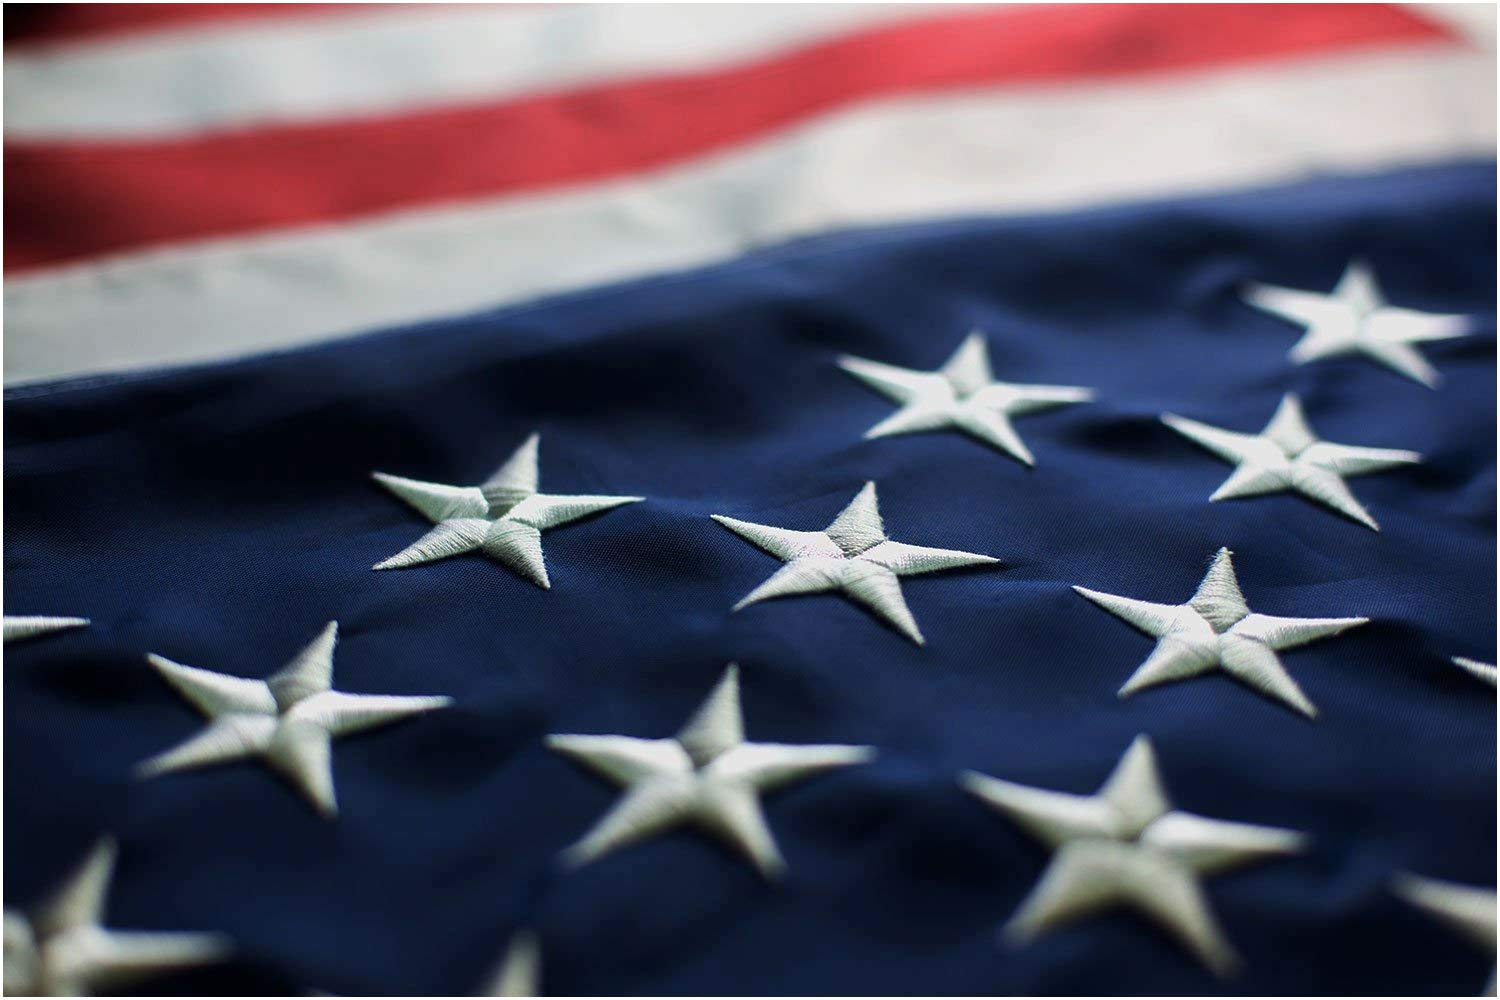 AMERICAN FLAG FBNC, 5x8 FT, Durable Polyester, Embroidered WHITE Stars and BRASS Grommets, STRENGTHENED by Double Stitching